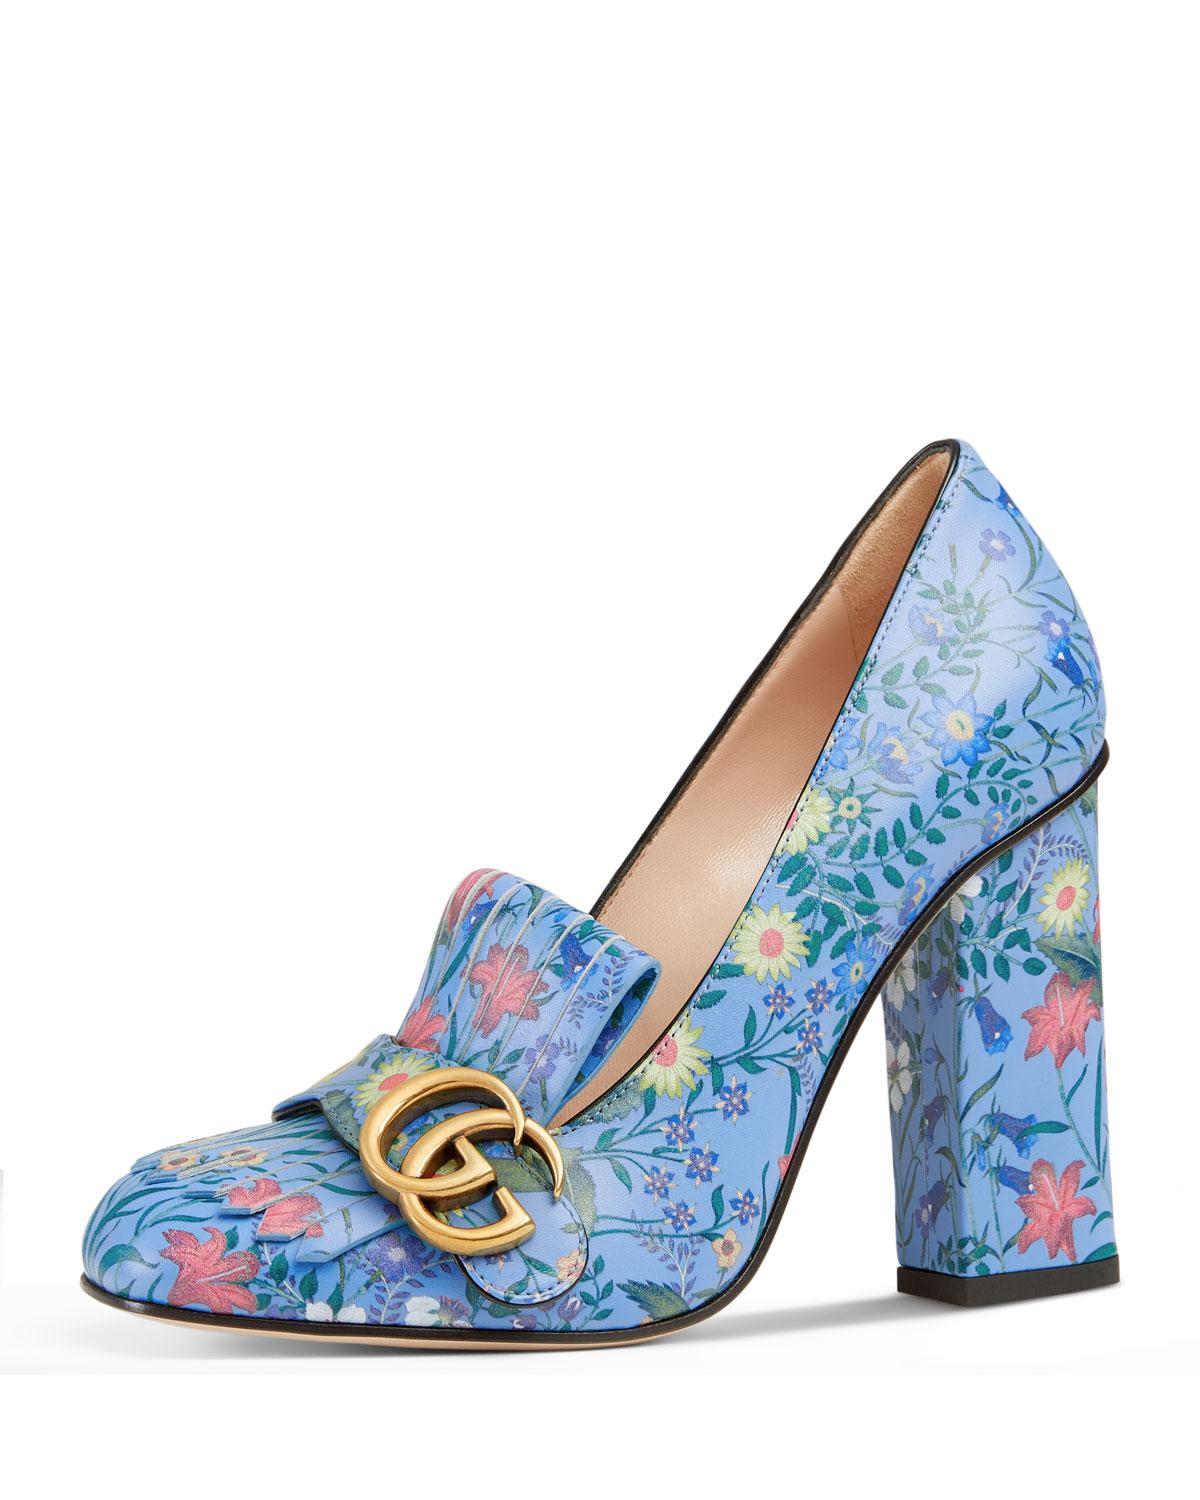 Lyst Gucci Marmont New Floral Loafer Pump In Blue